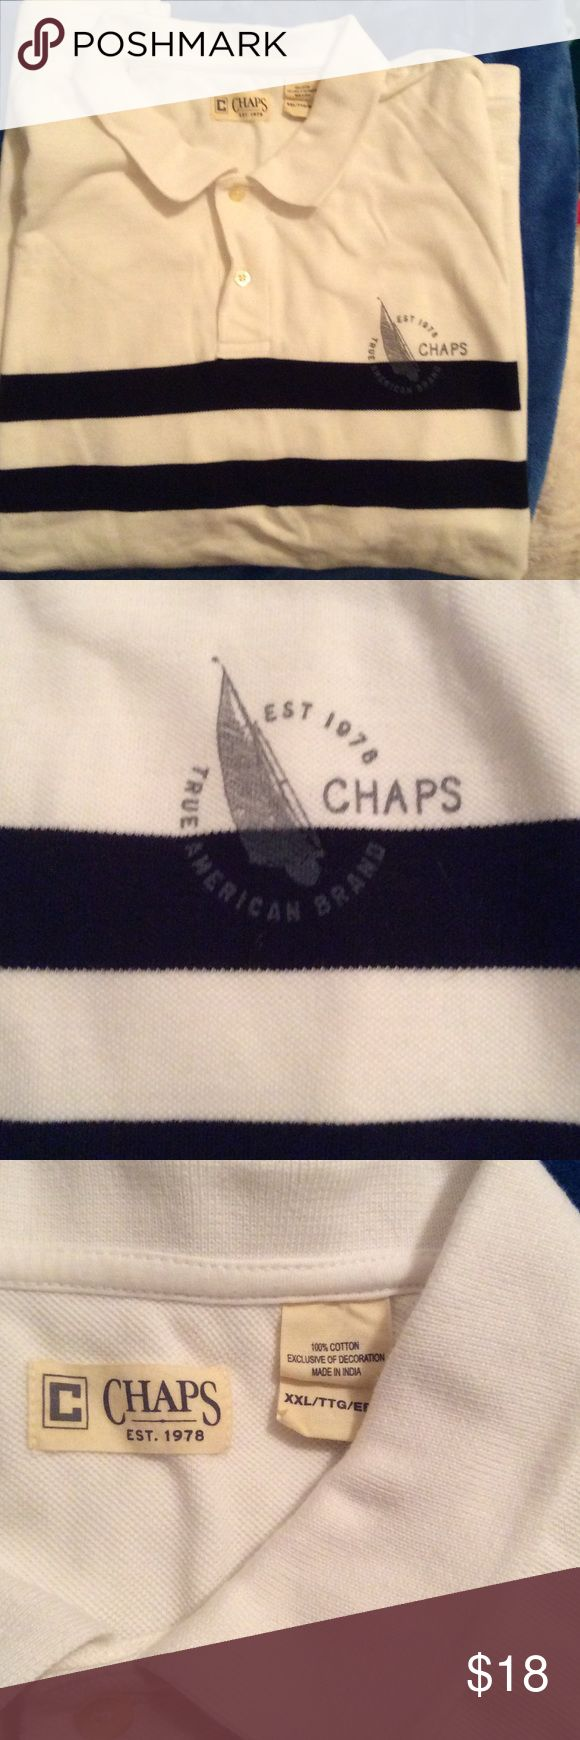 XXL CHAPS men's polo shirt white with dark blue XXL CHAPS POLO. SHIRT white with dark blue stripes only worn once. Chaps Shirts Polos